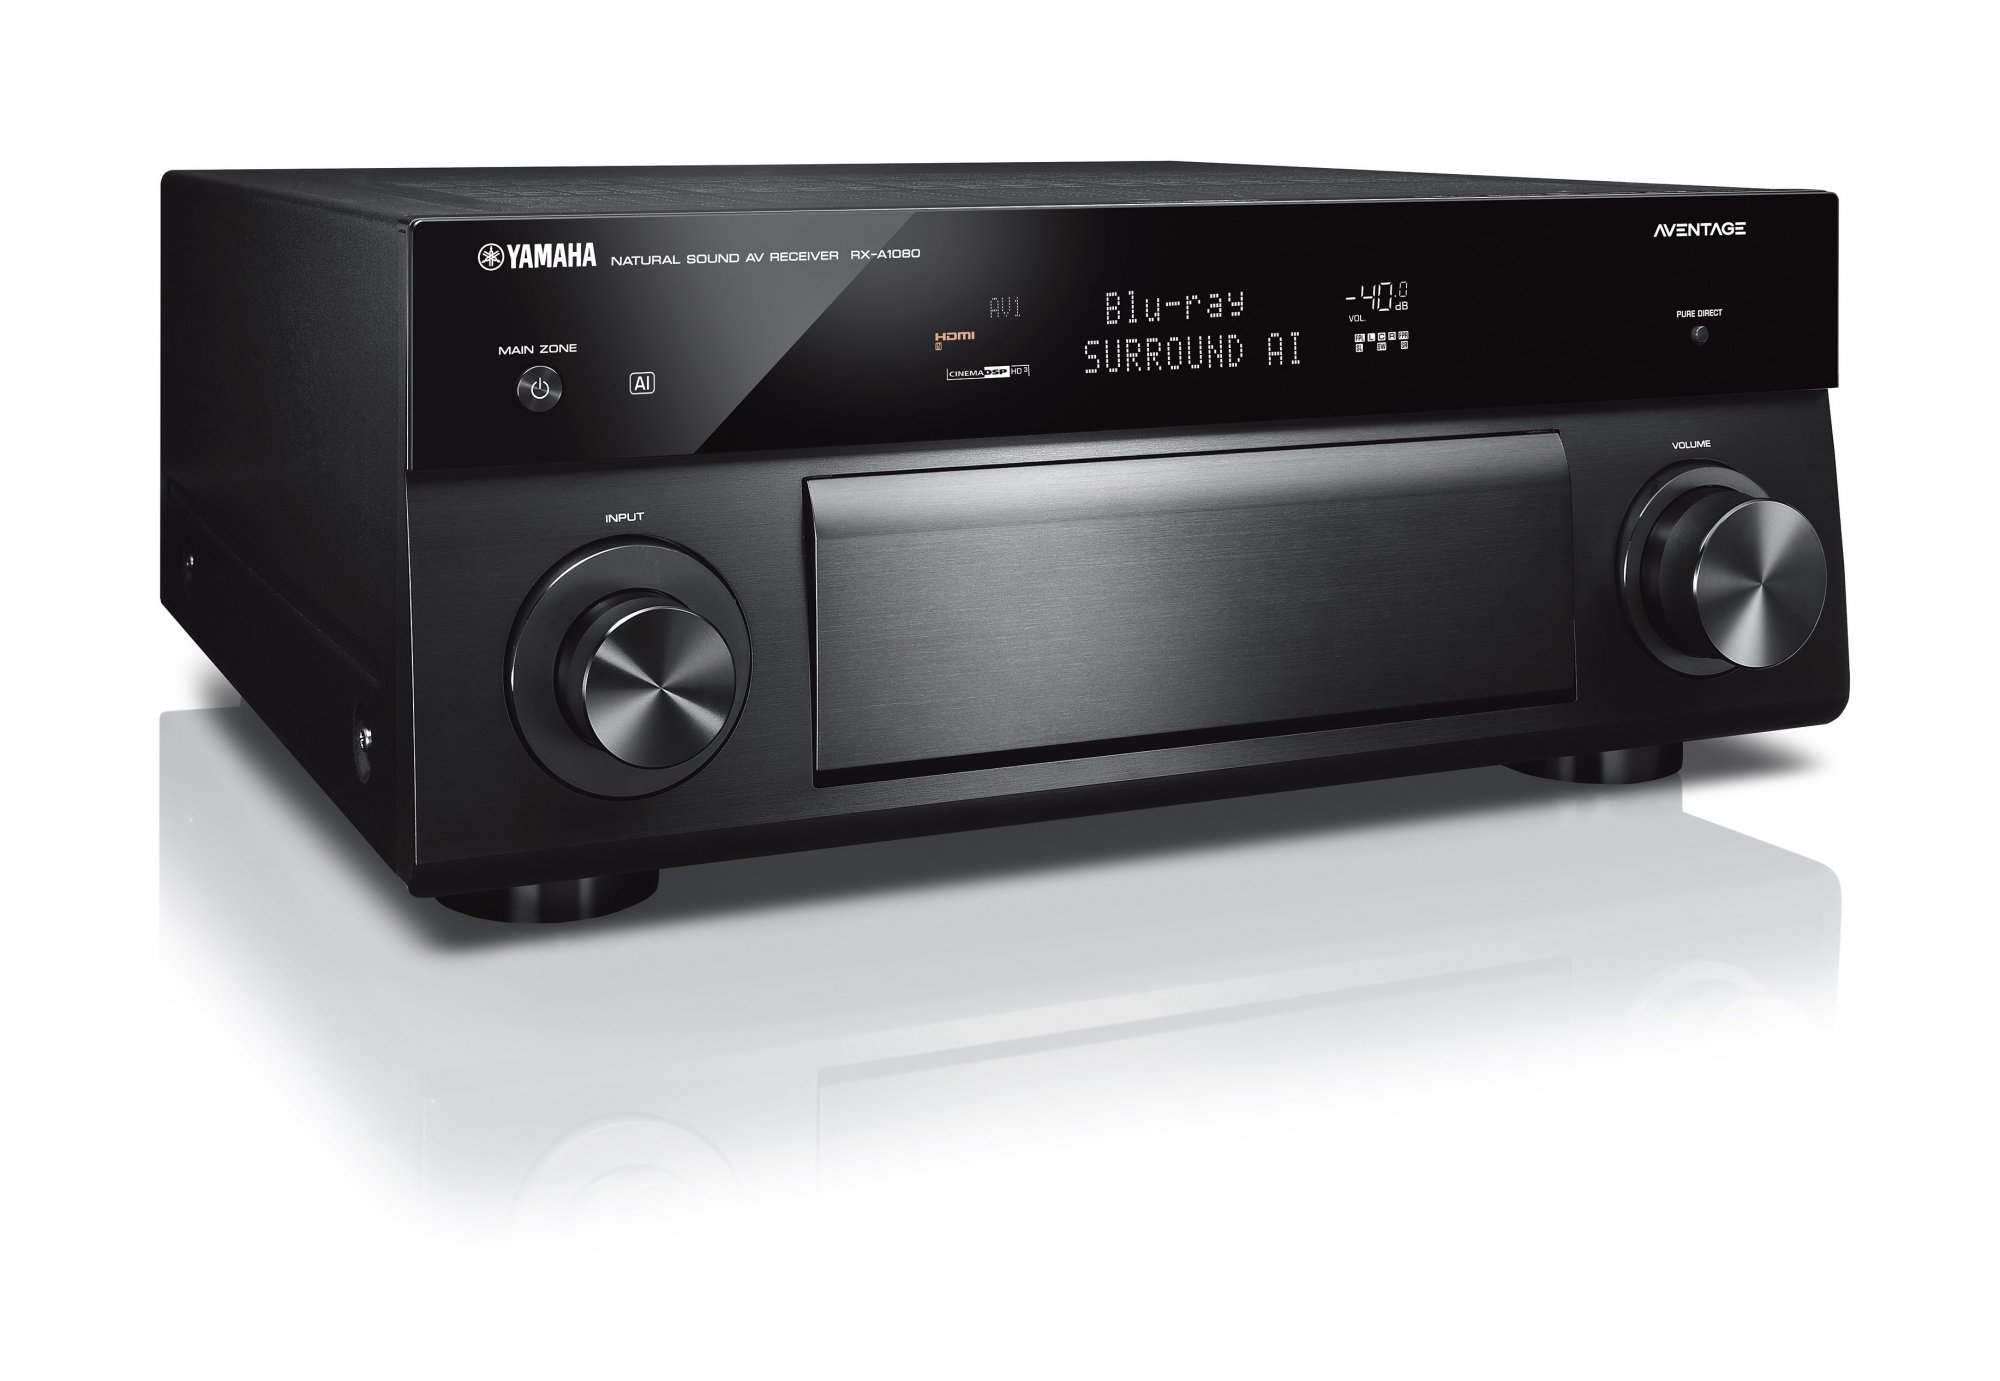 Yamaha Aventage RX-A1080 Receiver